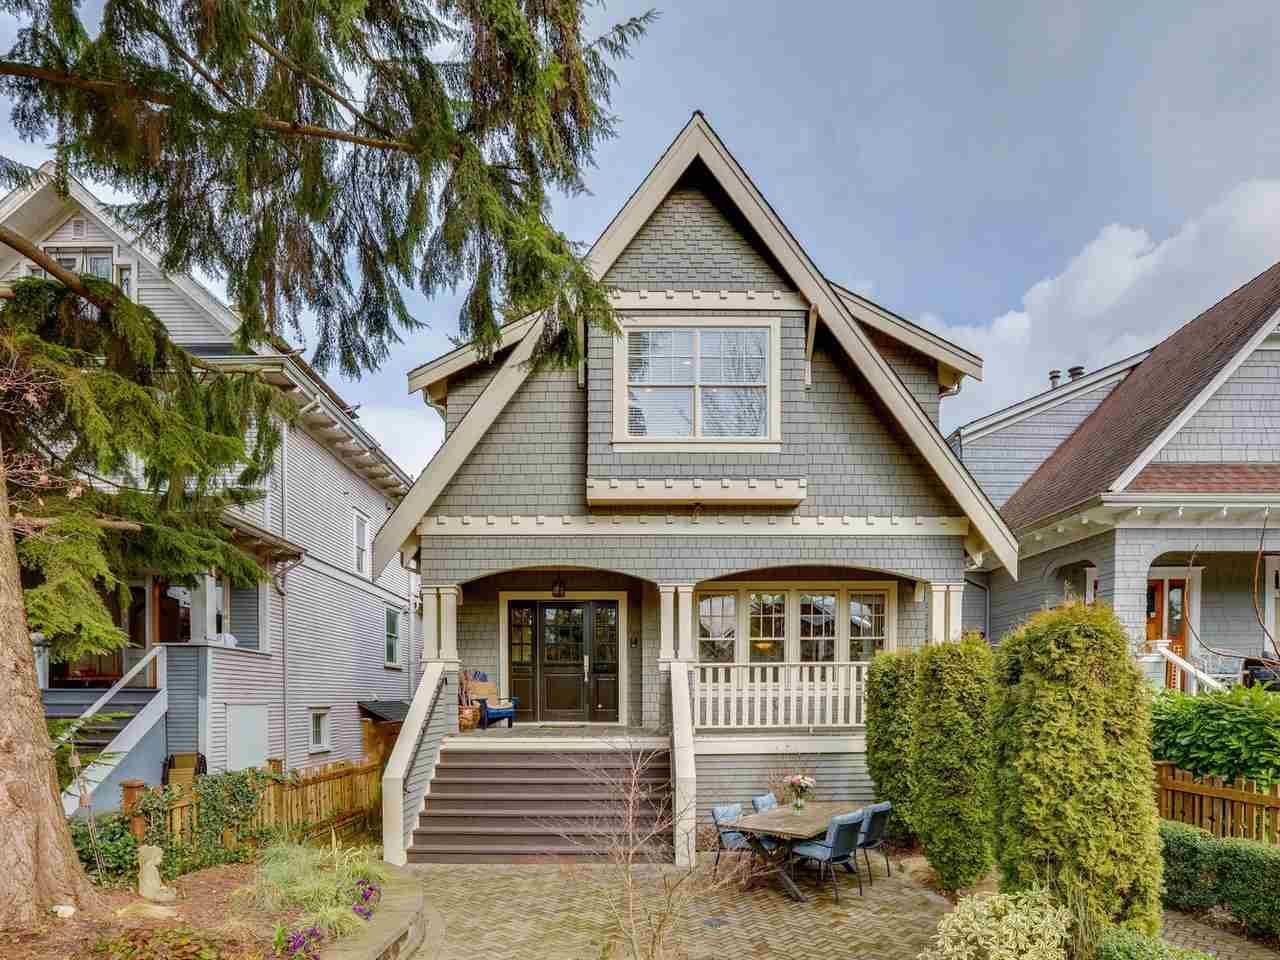 Main Photo: 3129 WEST 3RD AVENUE in Vancouver: Kitsilano 1/2 Duplex for sale (Vancouver West)  : MLS®# R2546354